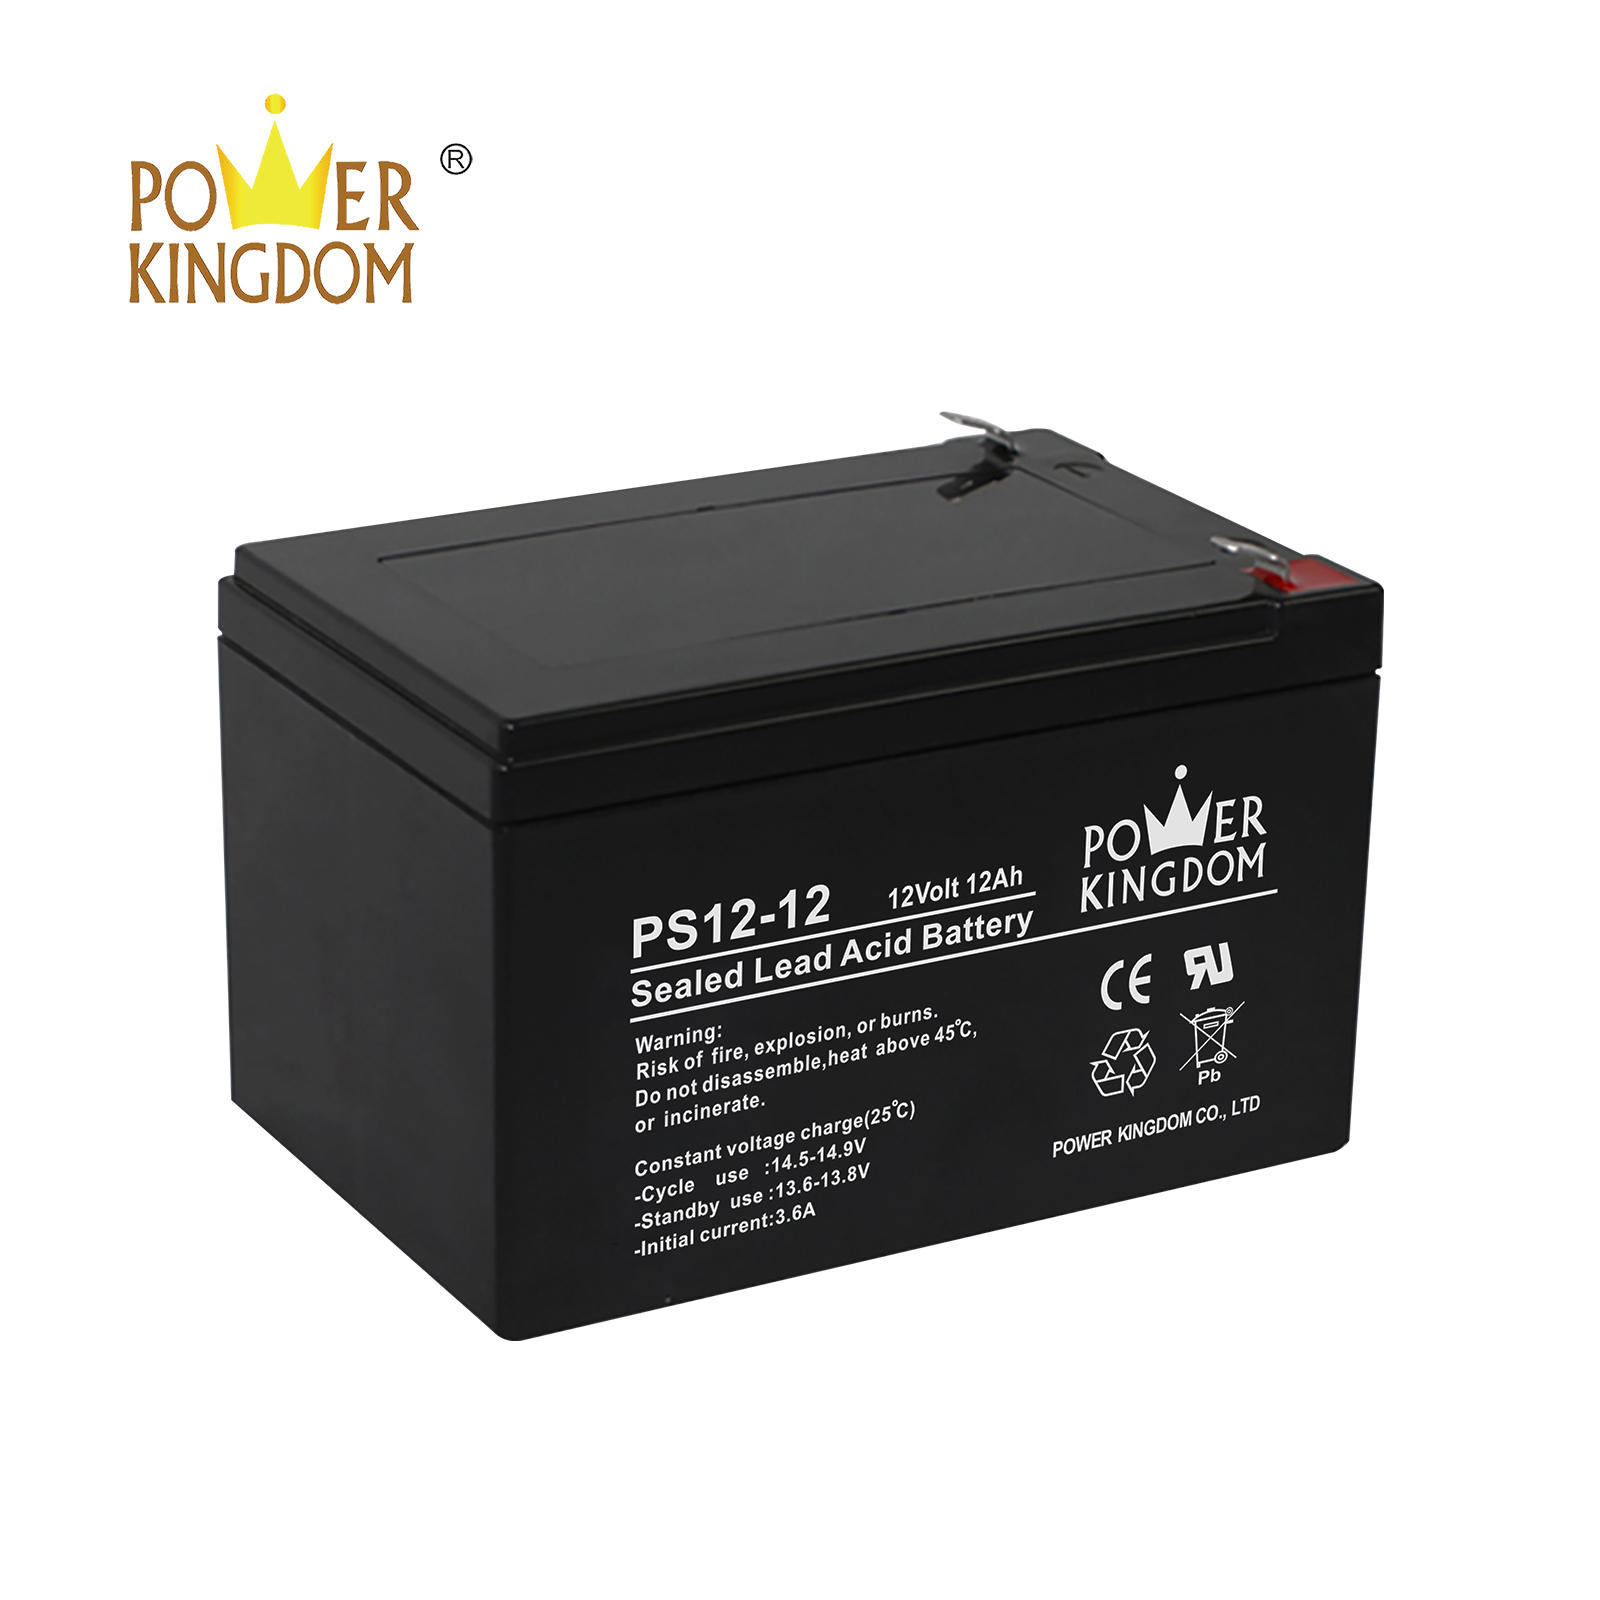 Hot sale PS12-12 lead acid battery 12v 12ah 20hr small rechargeable battery